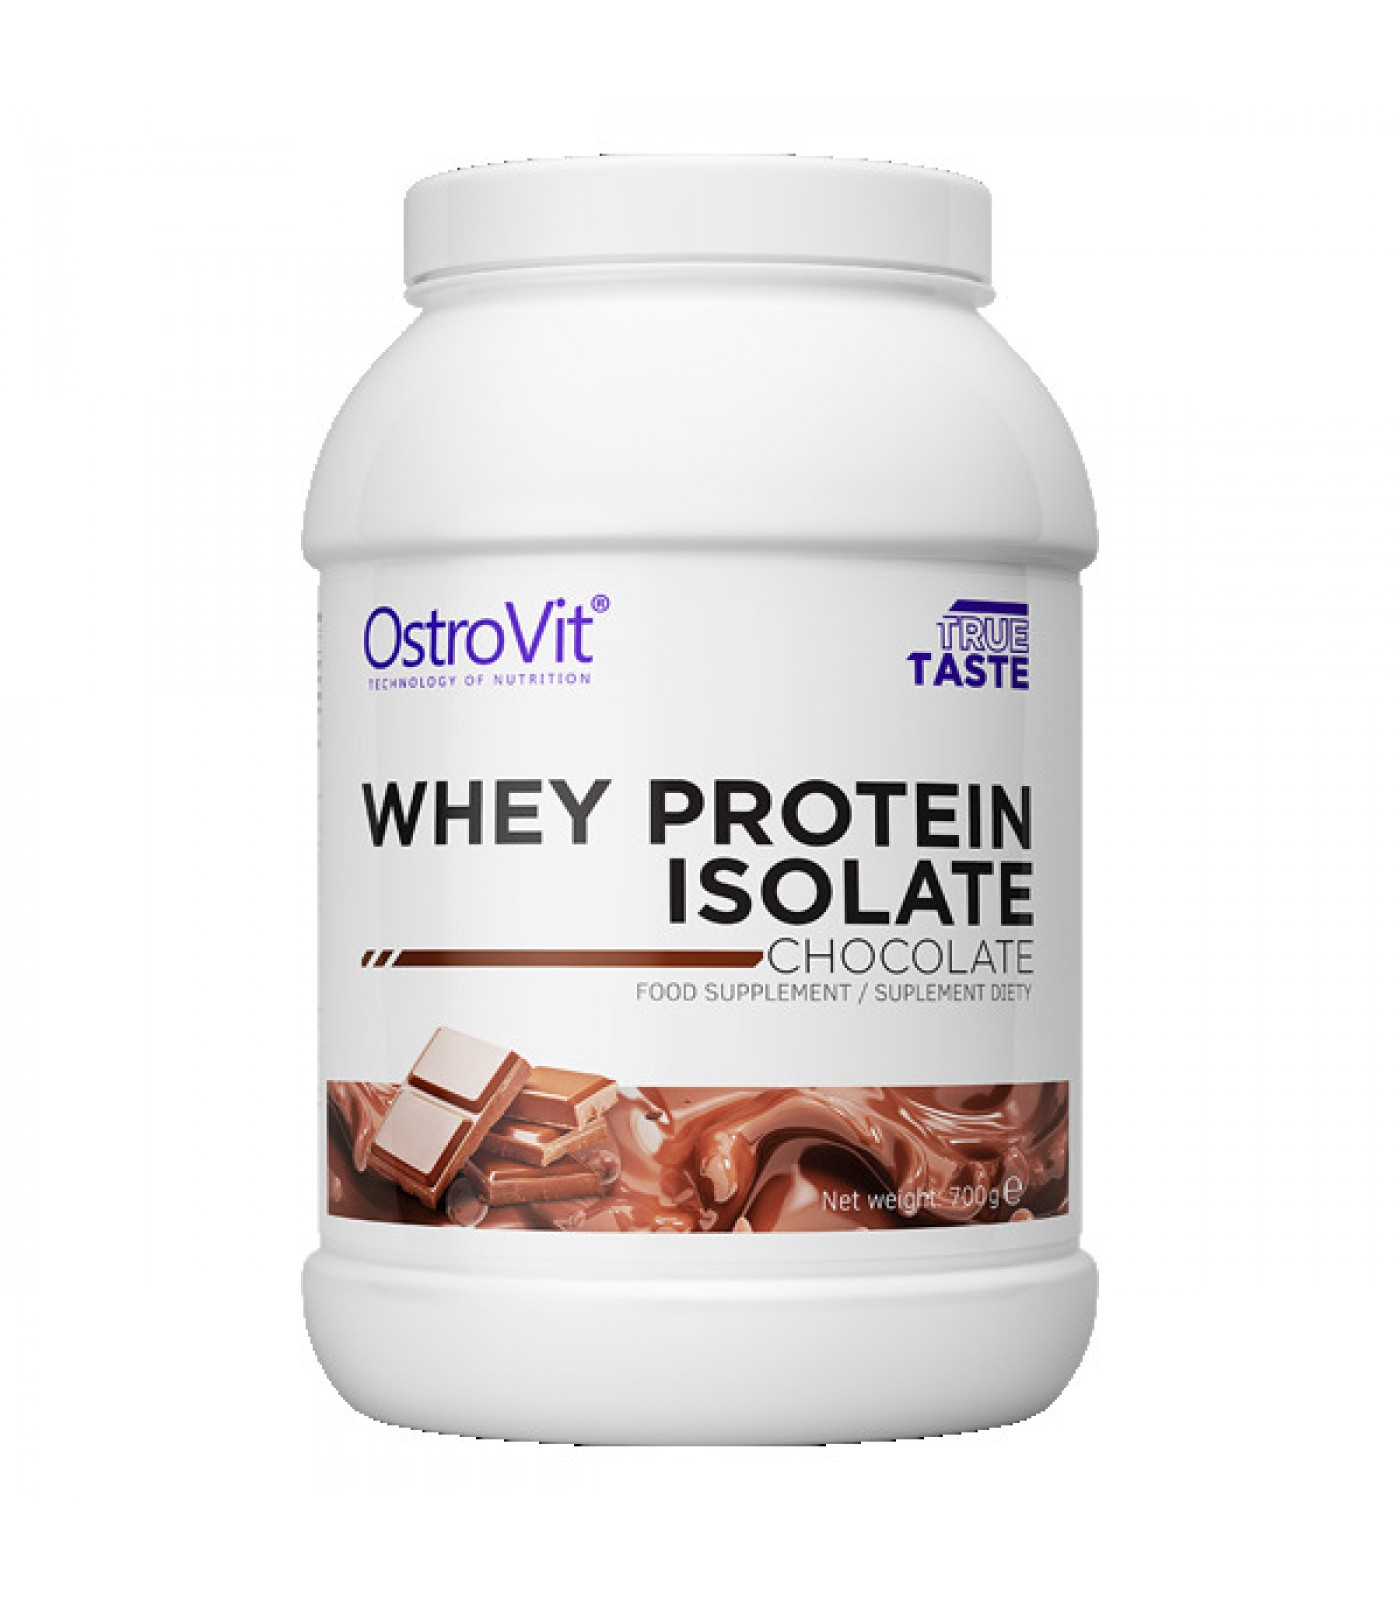 OstroVit - Whey Protein Isolate​